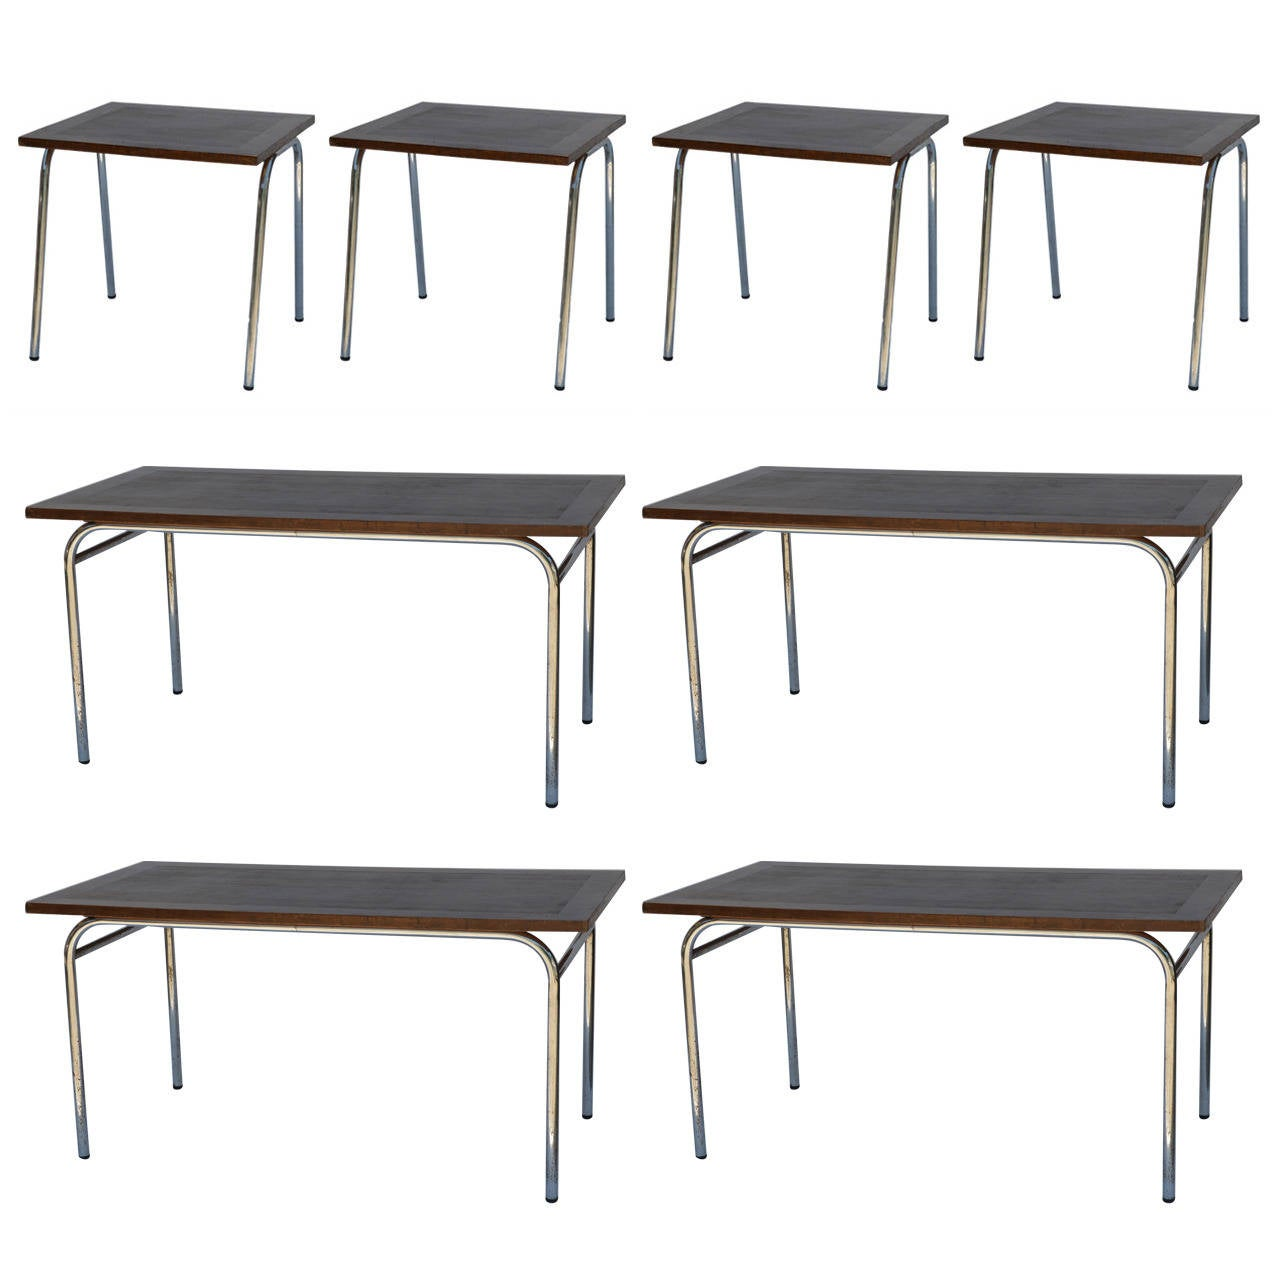 Square Rectangular Modern Dining Table Legs Industrial: Set Of Eight Large Rectangular And Square Matching French